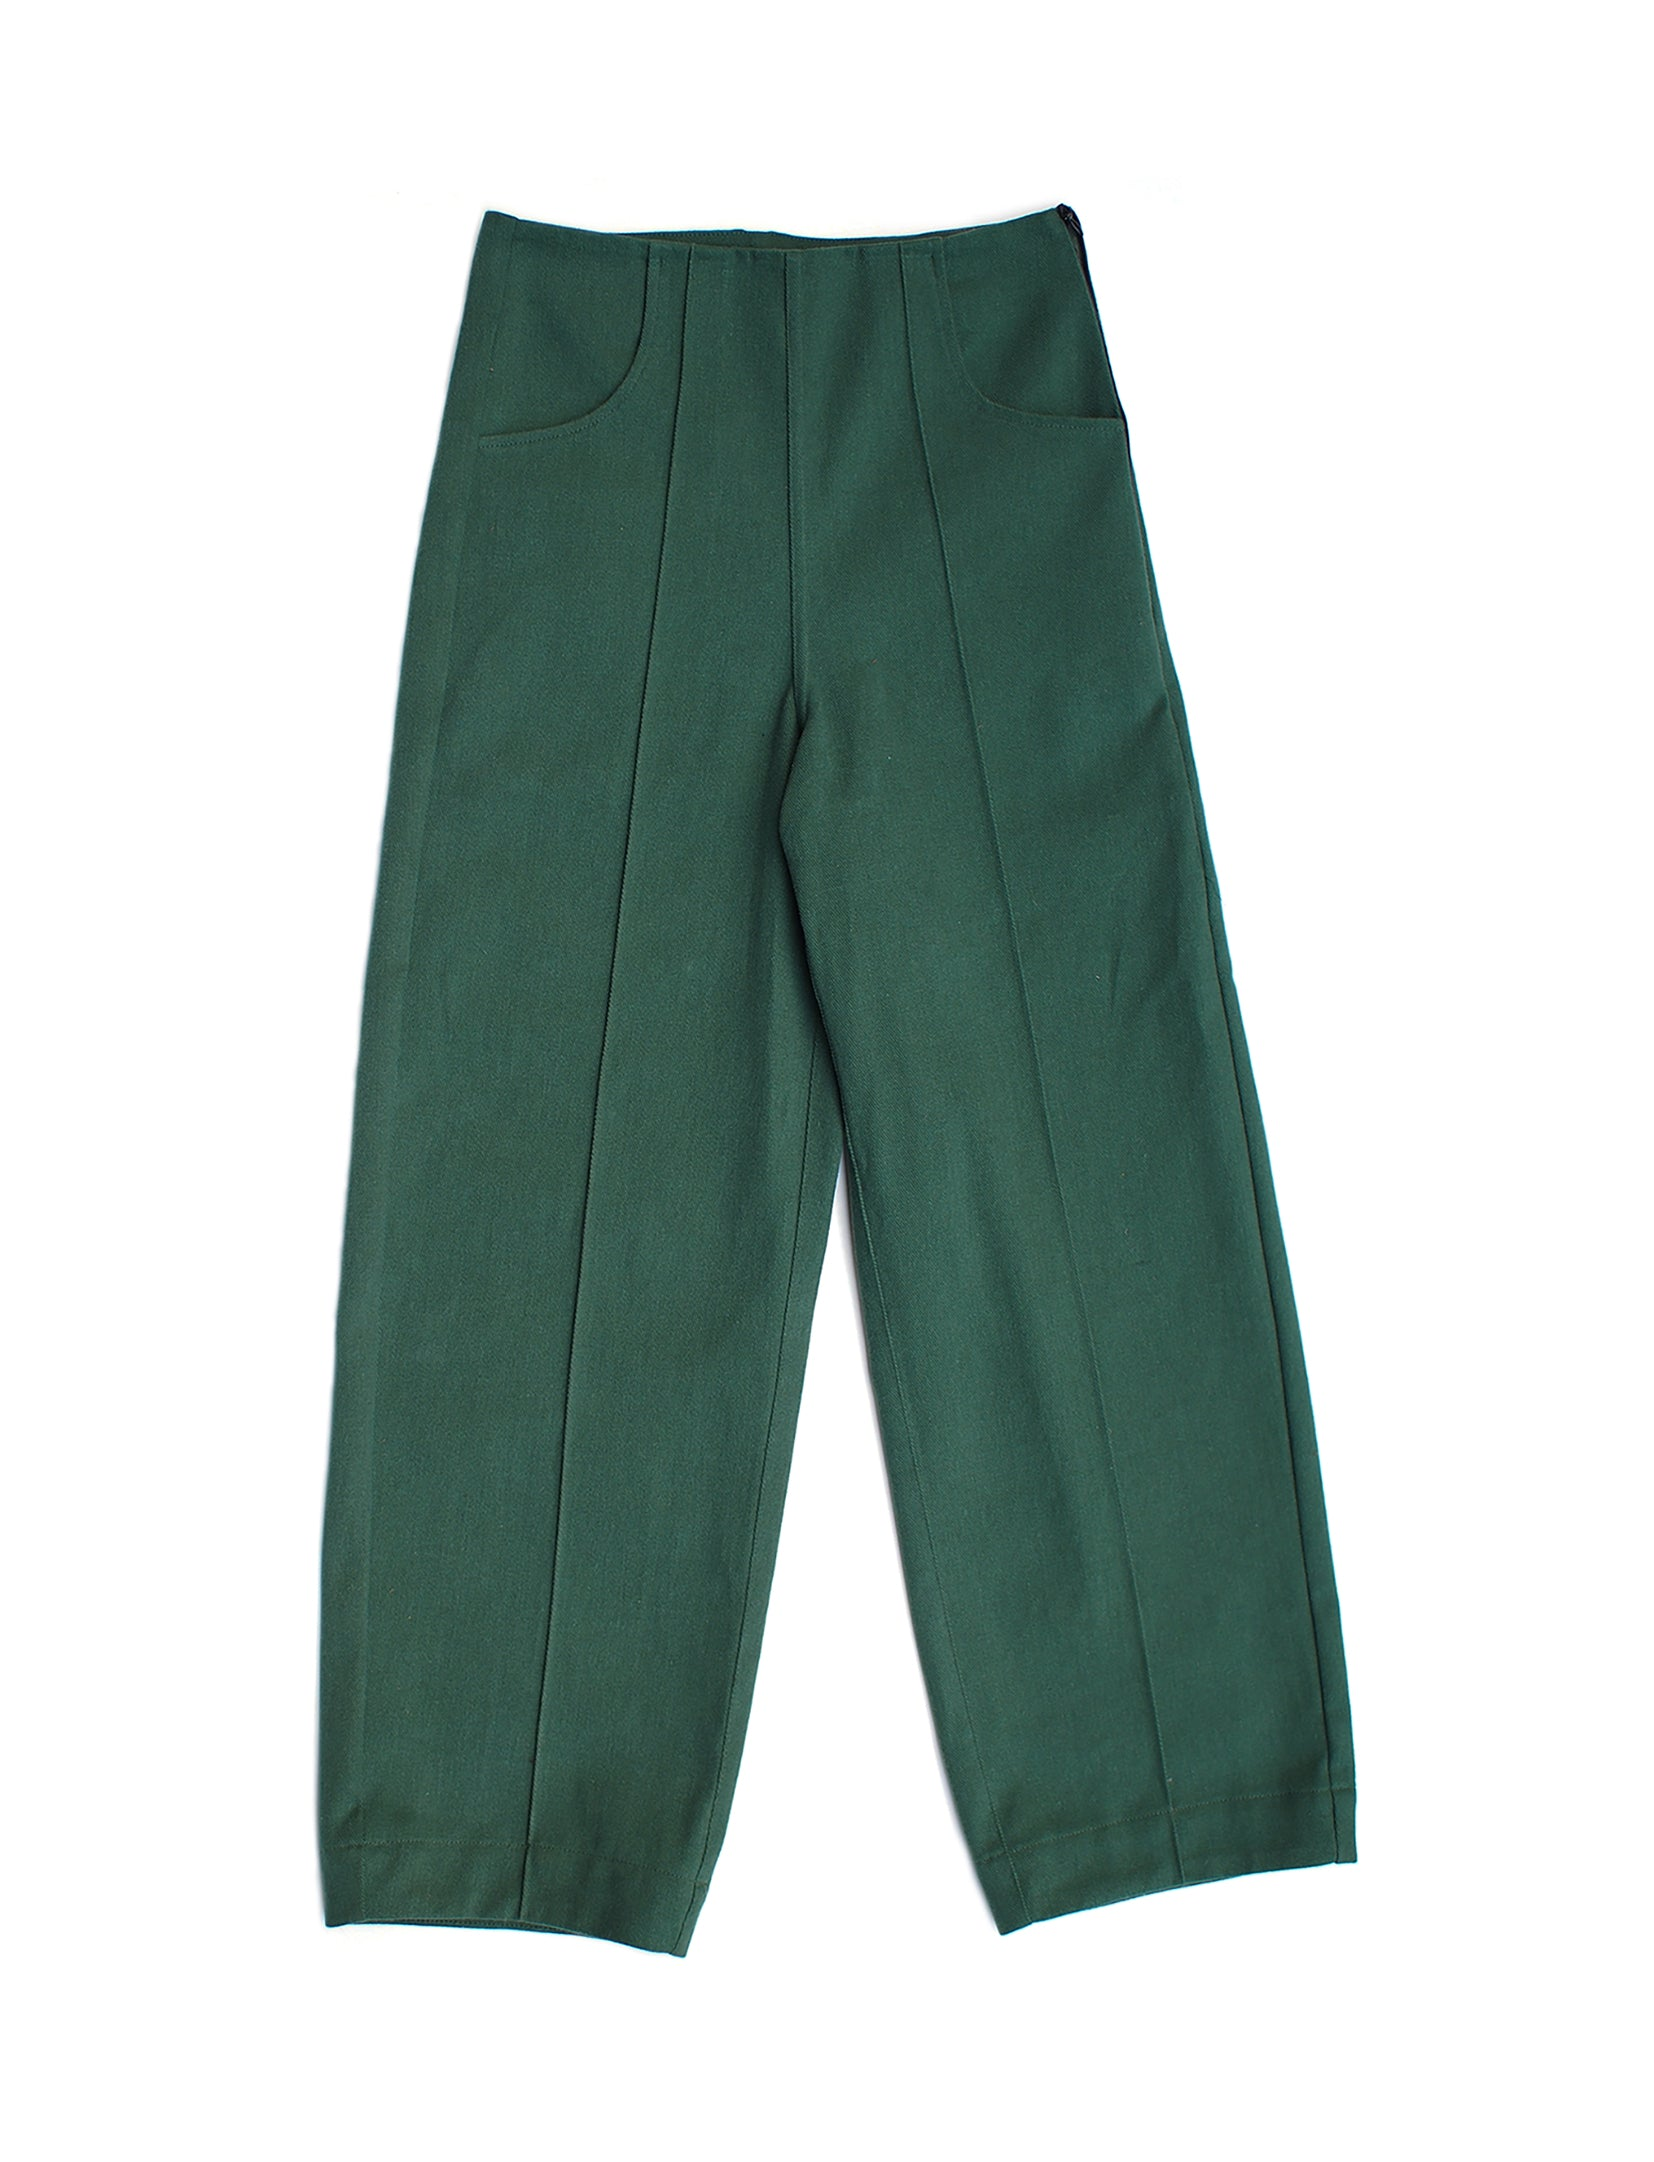 TAB PANTS, FOREST